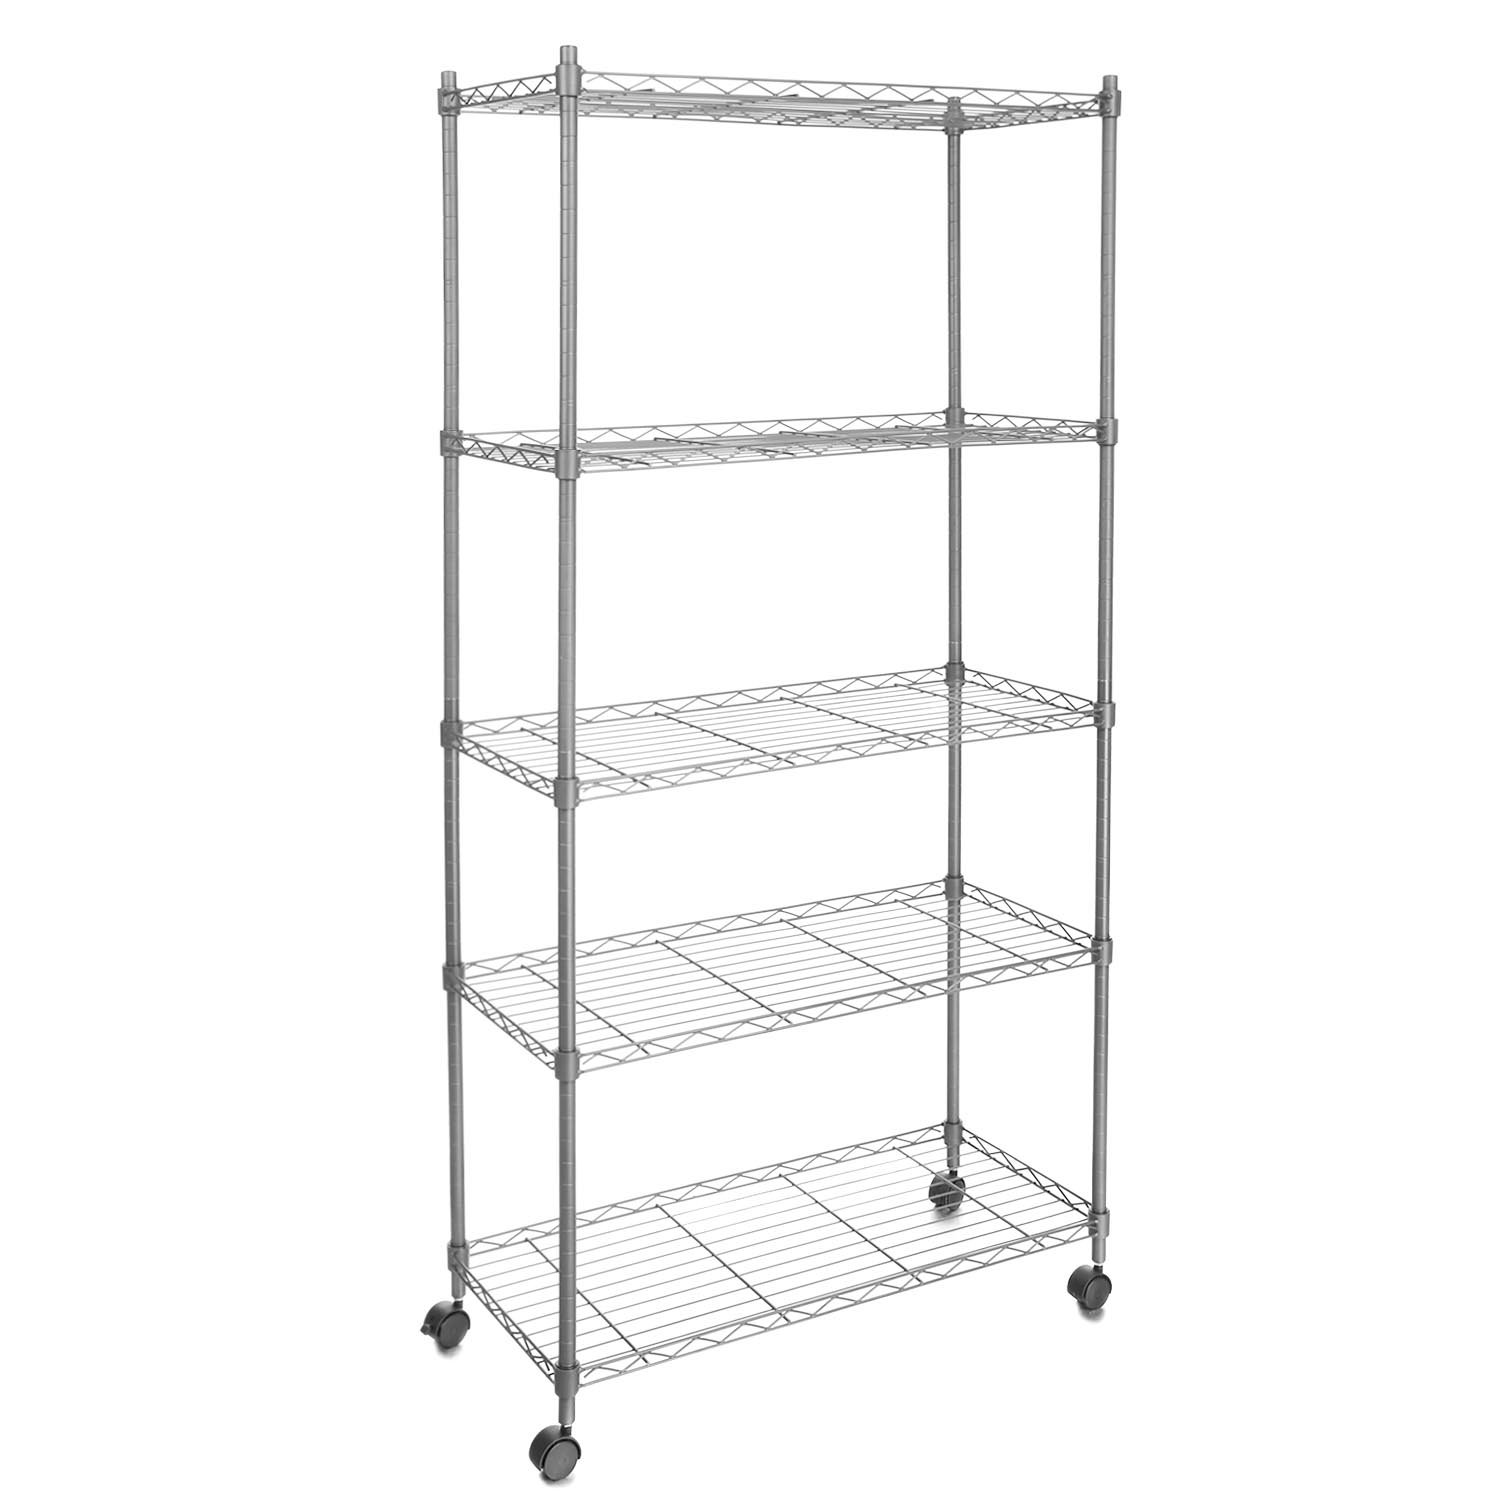 Cosway Adjustable Wire Shelving 5-Tier Shelf Metal Shelf Unit with Wheels for Kitchen Bedroom Garage (Sliver)